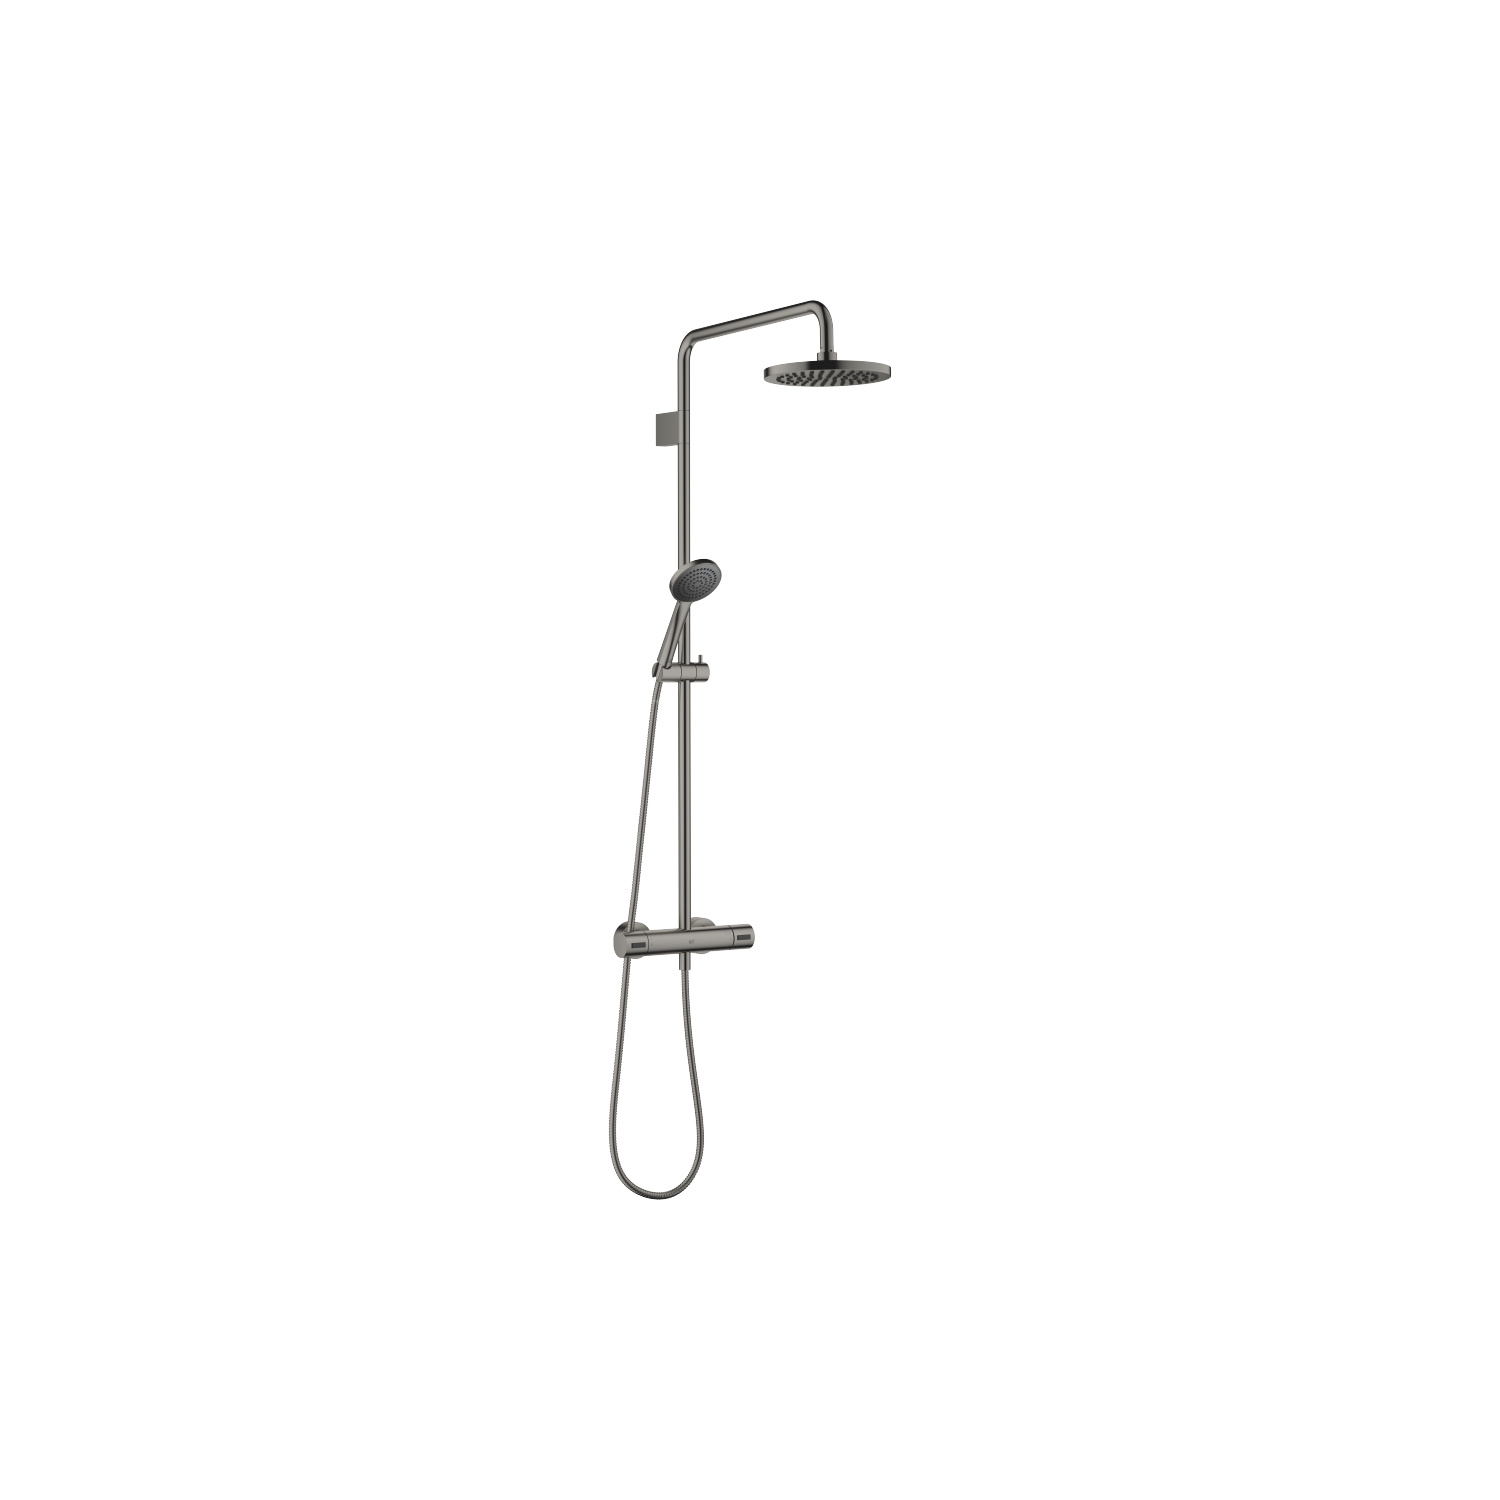 Showerpipe with shower thermostat - Dark Platinum matt